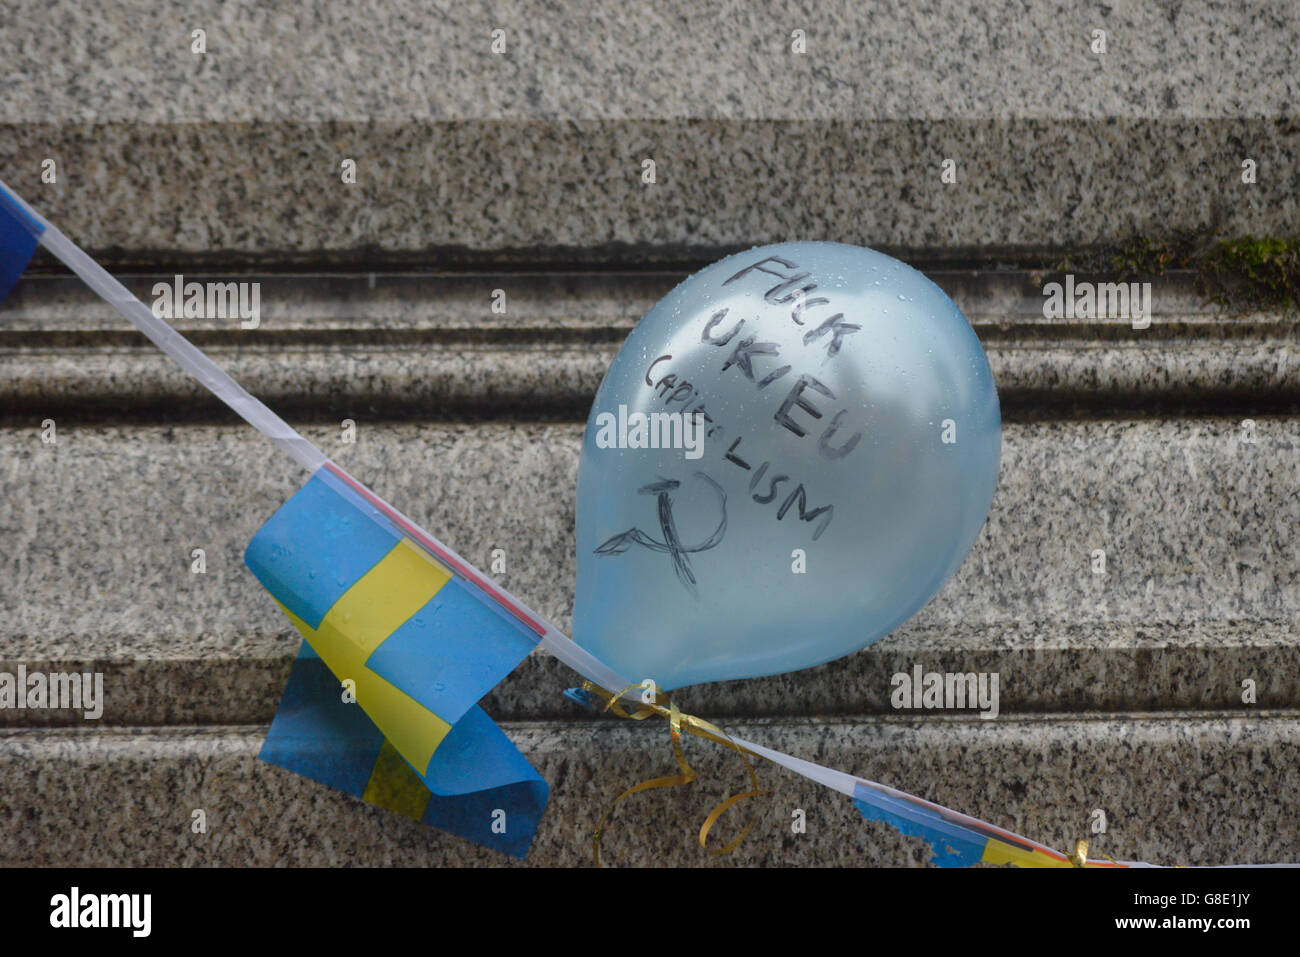 Manchester, UK. 28th June, 2016. A balloon displaying an anti-European Uninon, anti-capitalist, message at the 'Undo Stock Photo